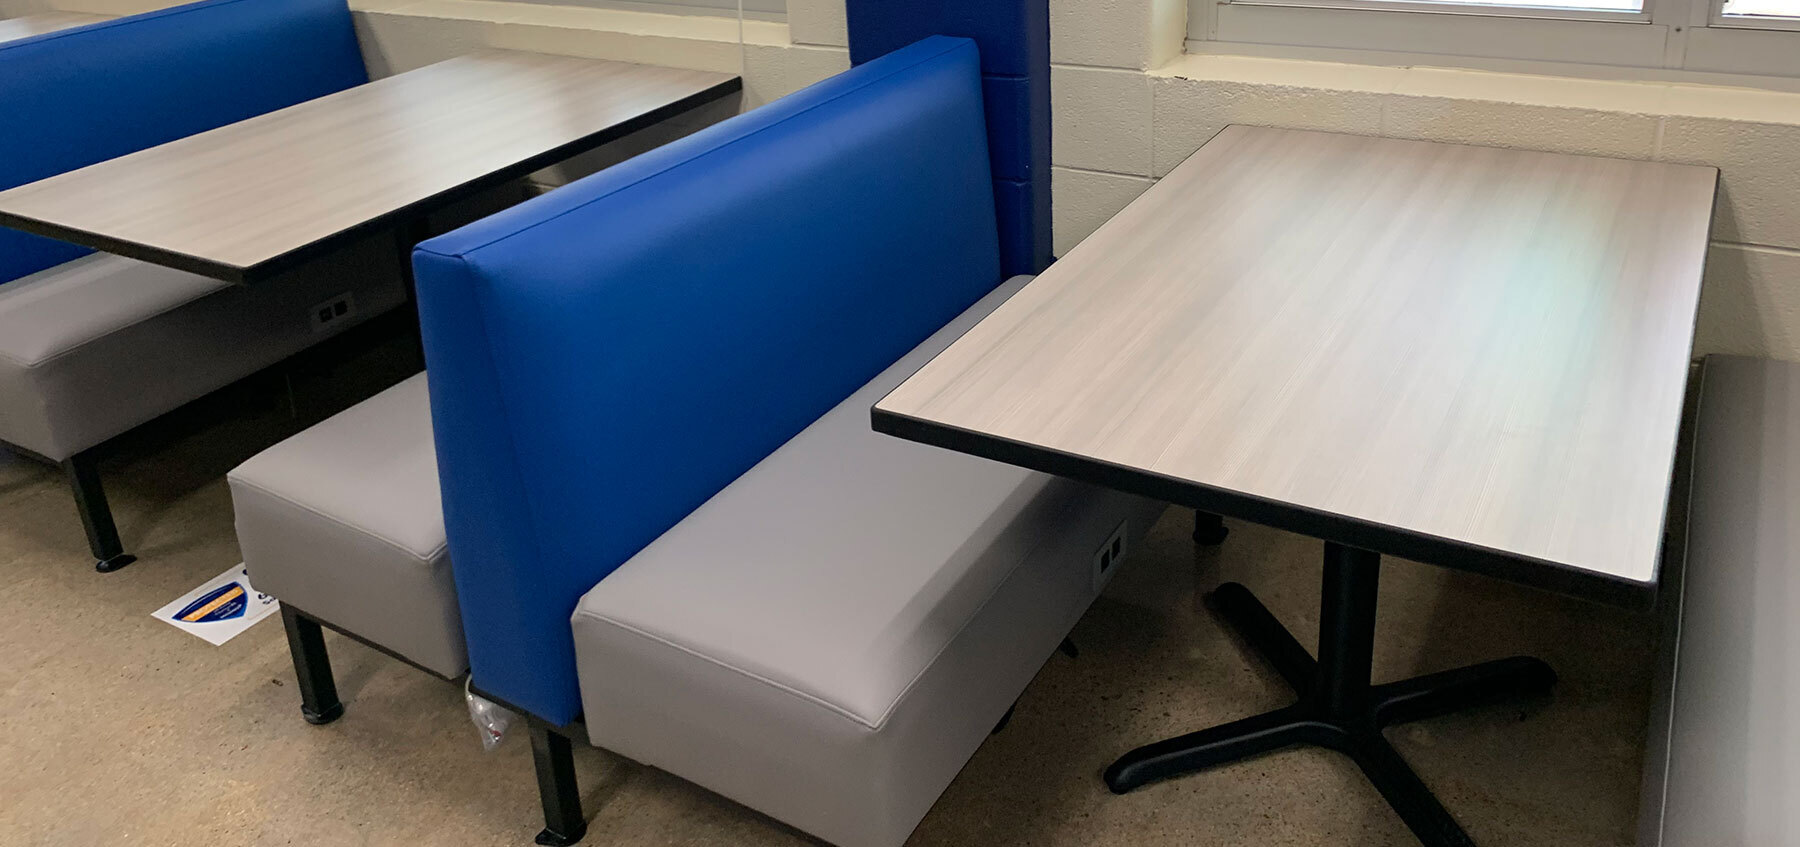 Durable booth and table works great in a school cafeteria, restaurants, dining rooms, and work break rooms.  These booths come in many different colors perfect for your brand or school colors.  Selecting the right table top for your restaurant or cafeteria is not only crucial for the design,  but also has a big impact on function and flow. Whether it be vinyl edge, wood edge, or other communal table options -- Plymold has plenty of options.